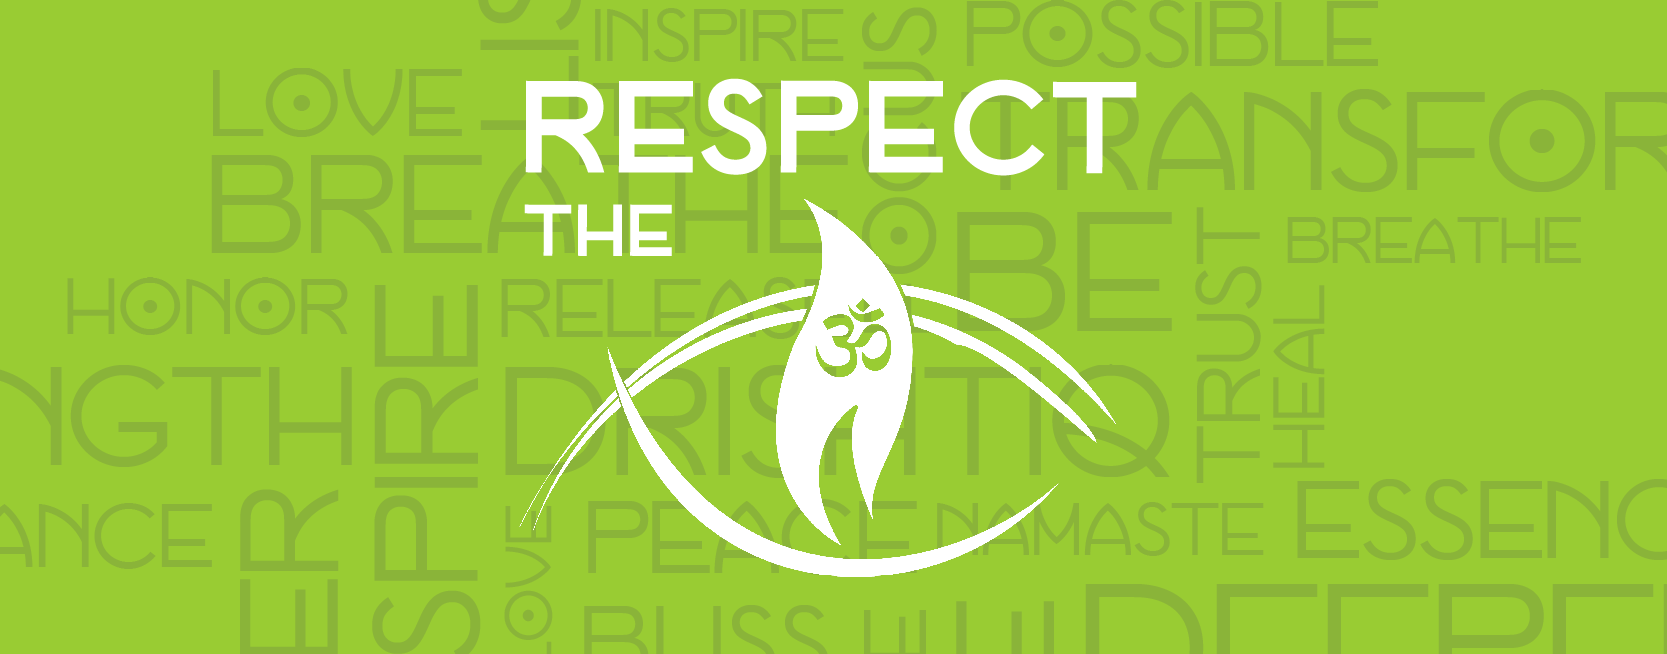 respect-04.png